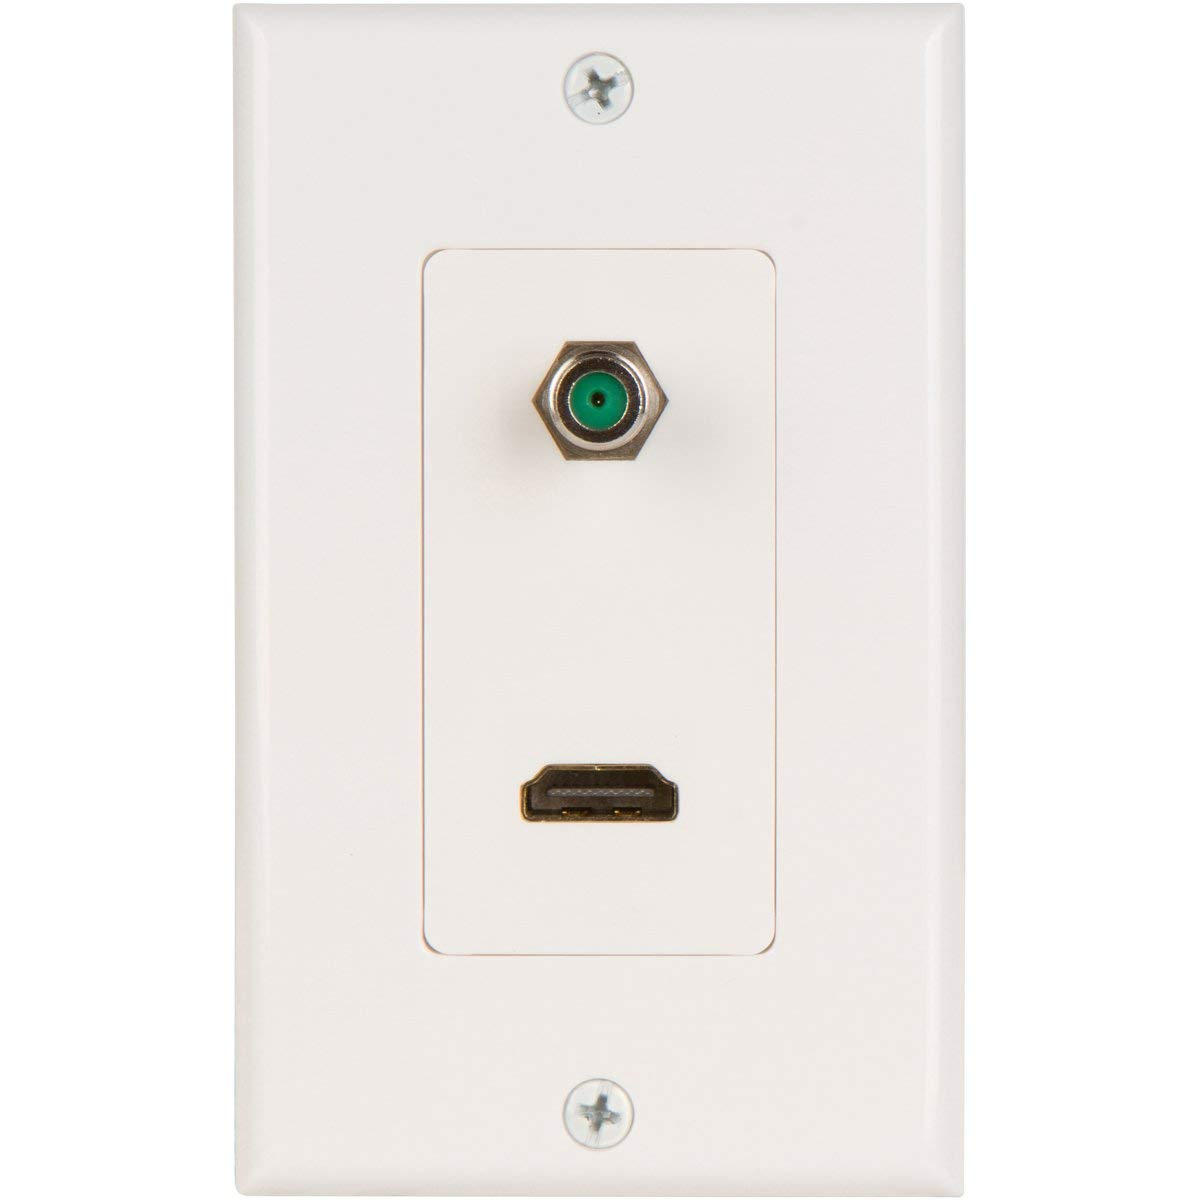 Buyers Point Hdmi Pigtail 3ghz Coax Wall Plate With Single Gang Low Poin Ethernet Jack Wiring Easy To Install